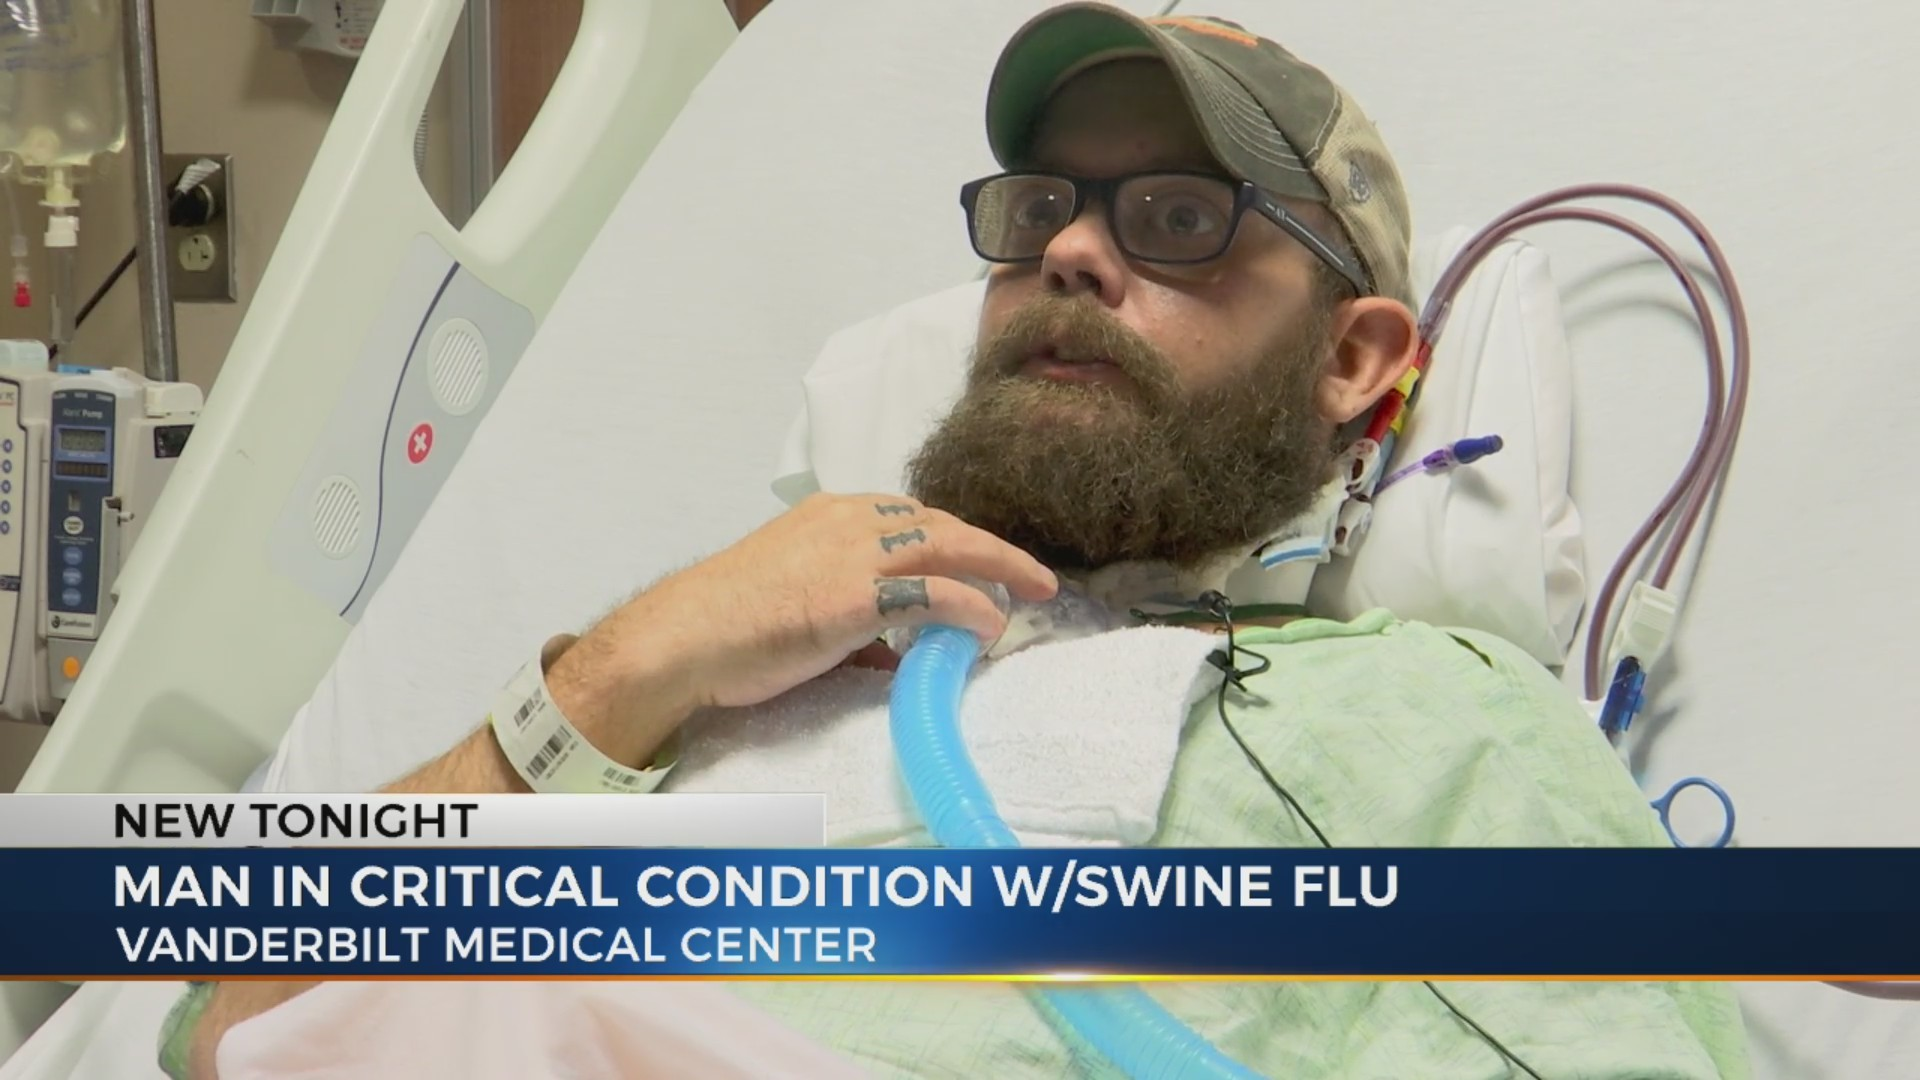 Swine_flu_dangers_0_20190319222522-873703986